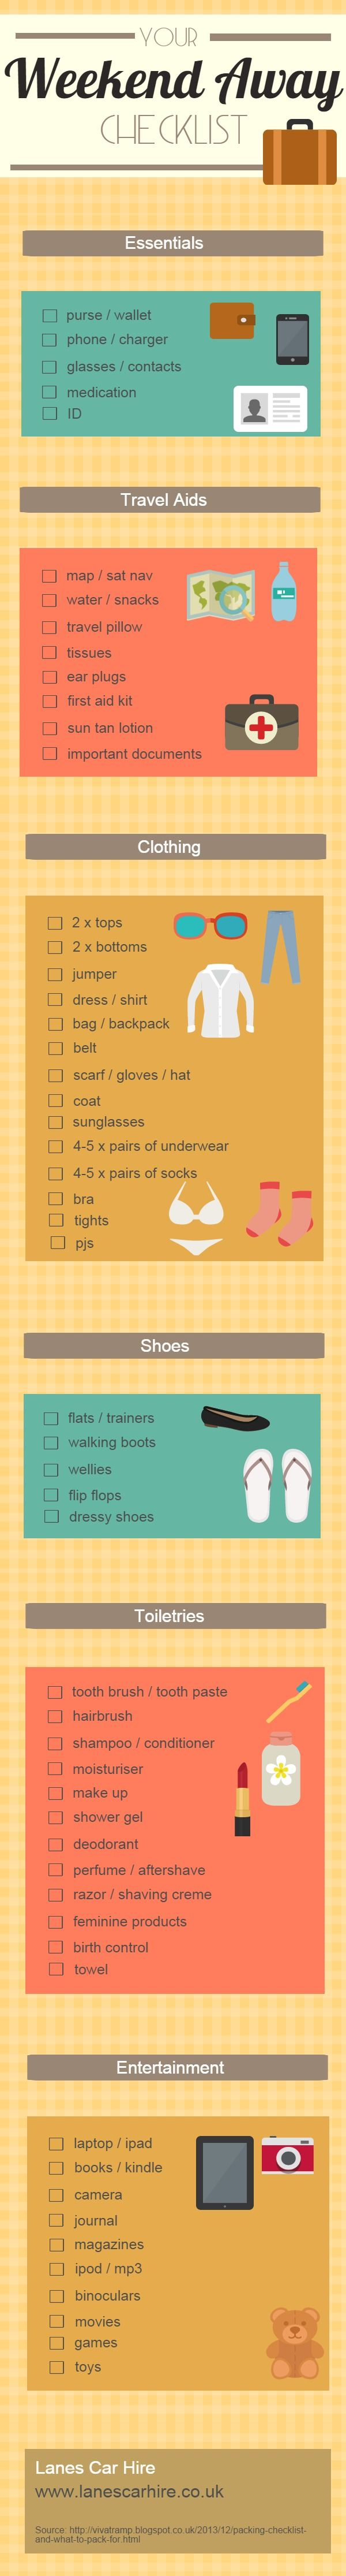 Your Weekend Away Checklist